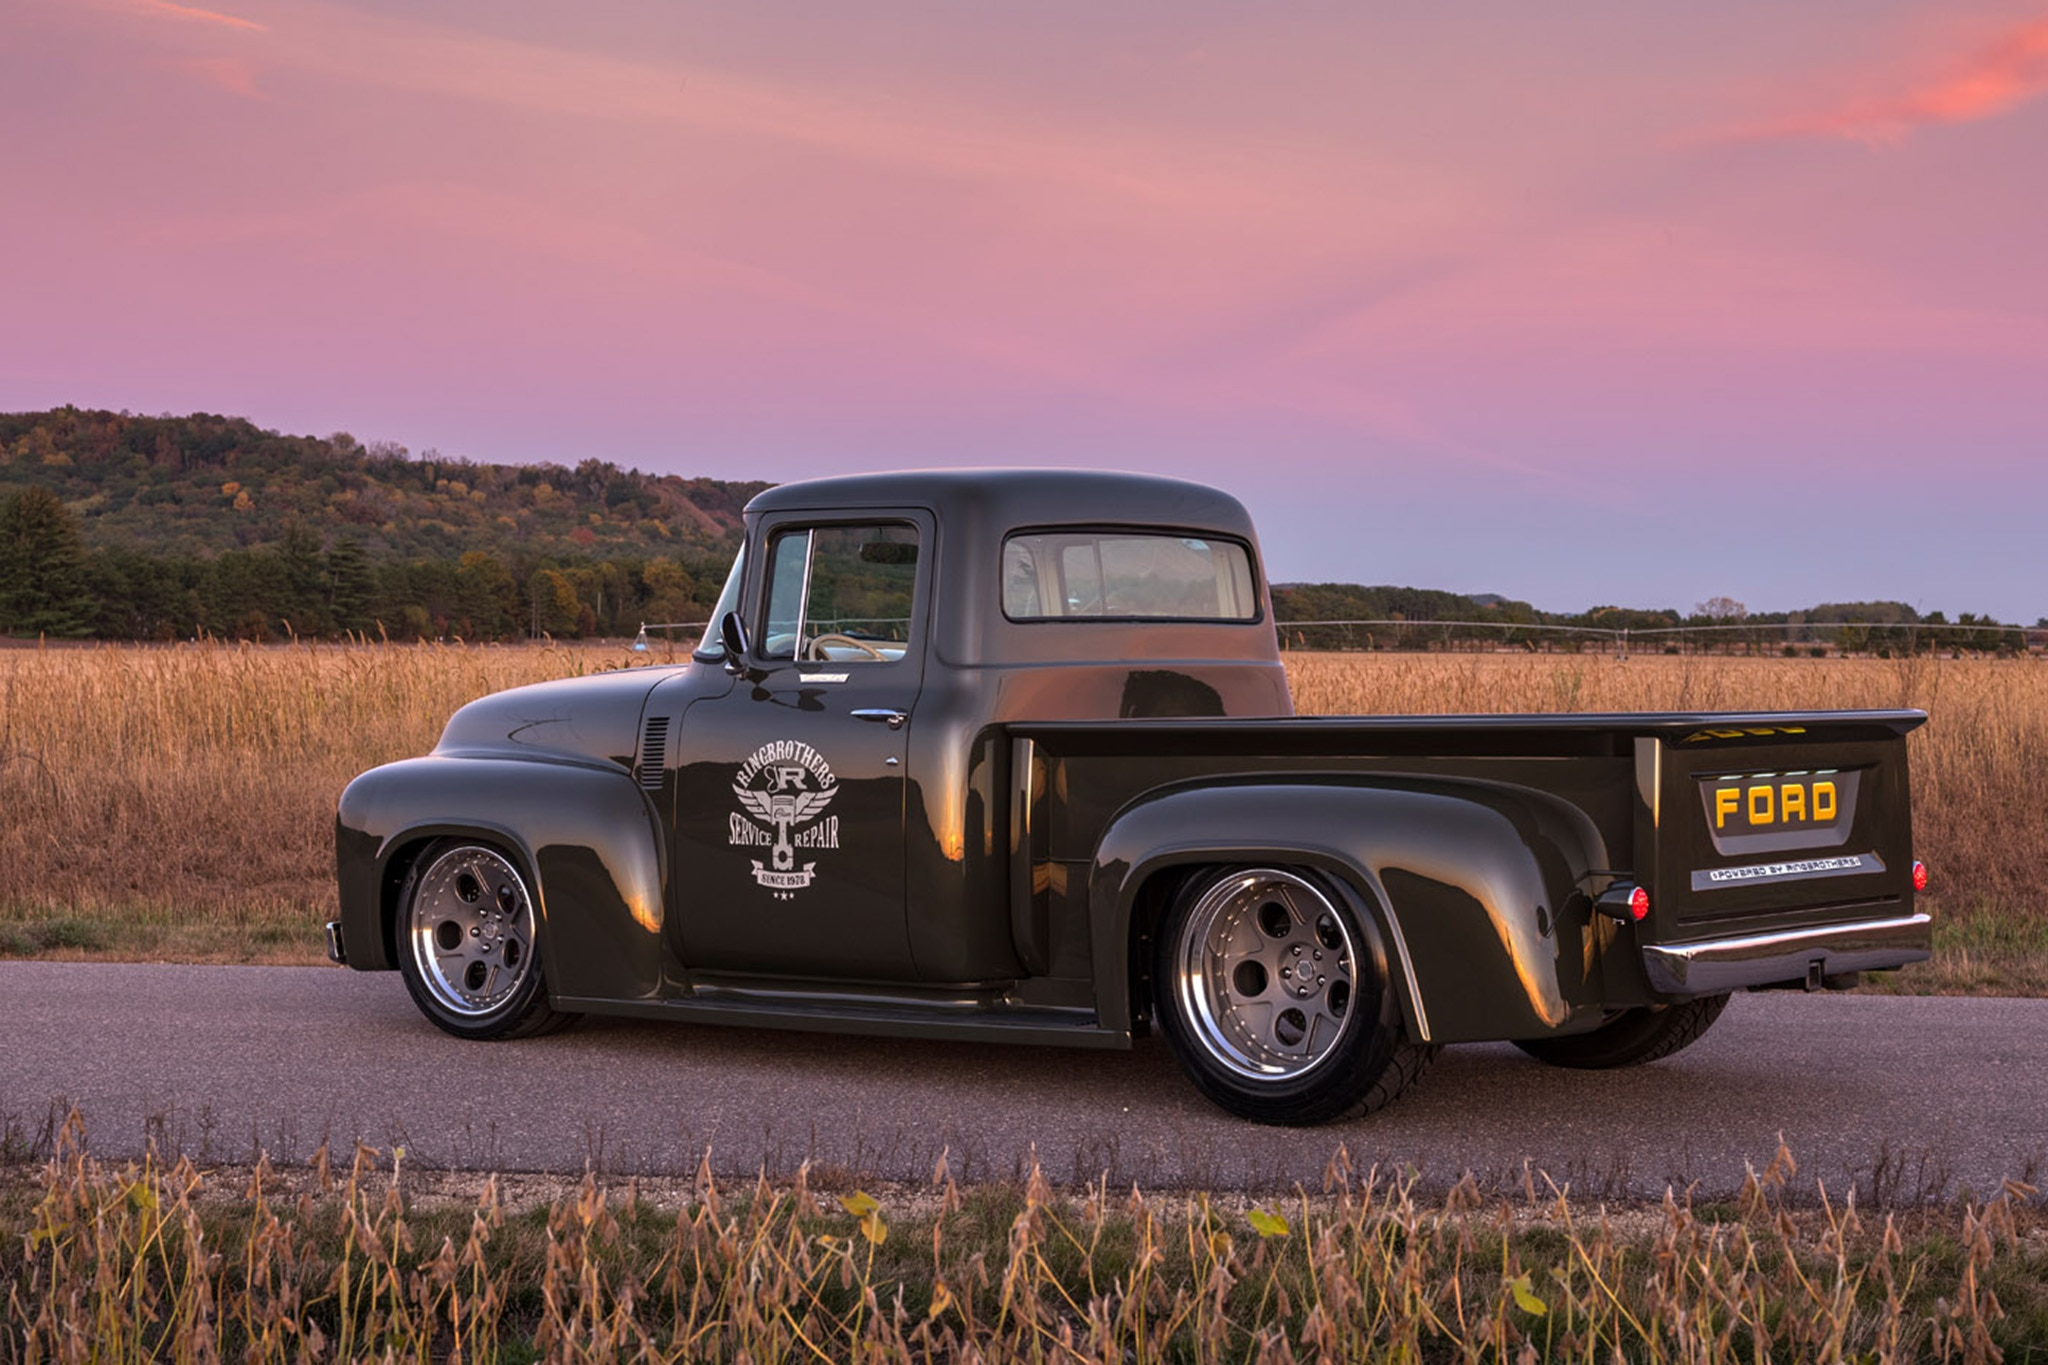 1956 Ford F 100 by Ringbrothers is a Real Gem